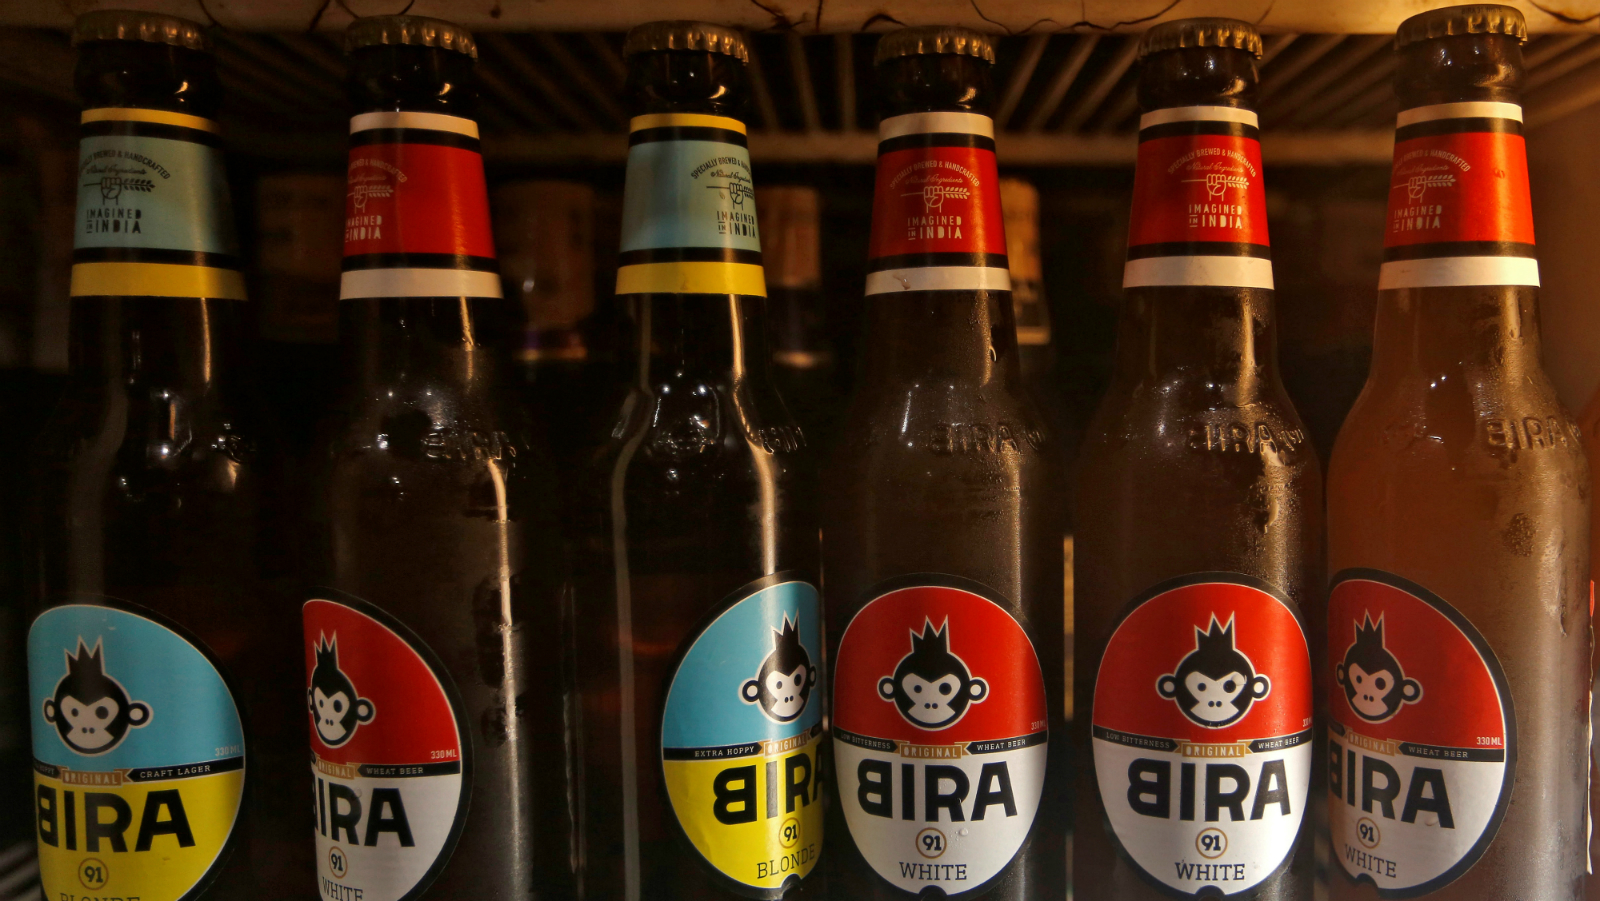 Bira beer bottles are pictured at a liquor store in Mumbai, India March 23, 2018.